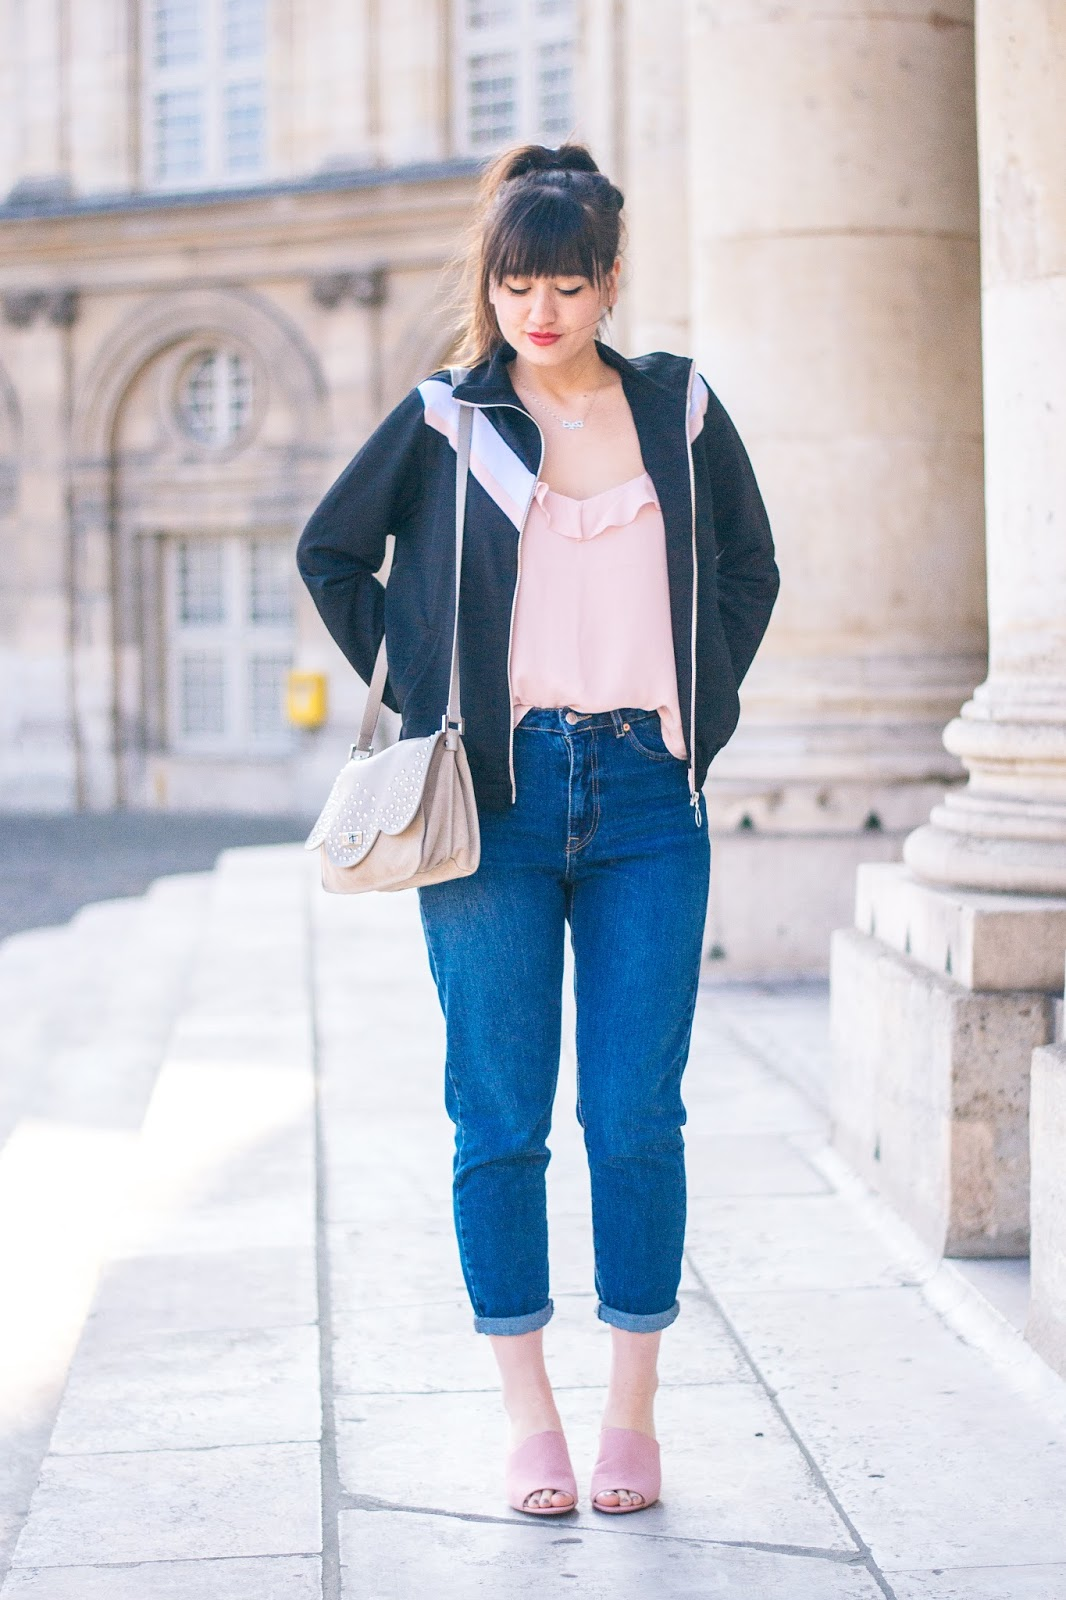 pimkie, summer look, stylish, mode, paris, paris fashion blogger